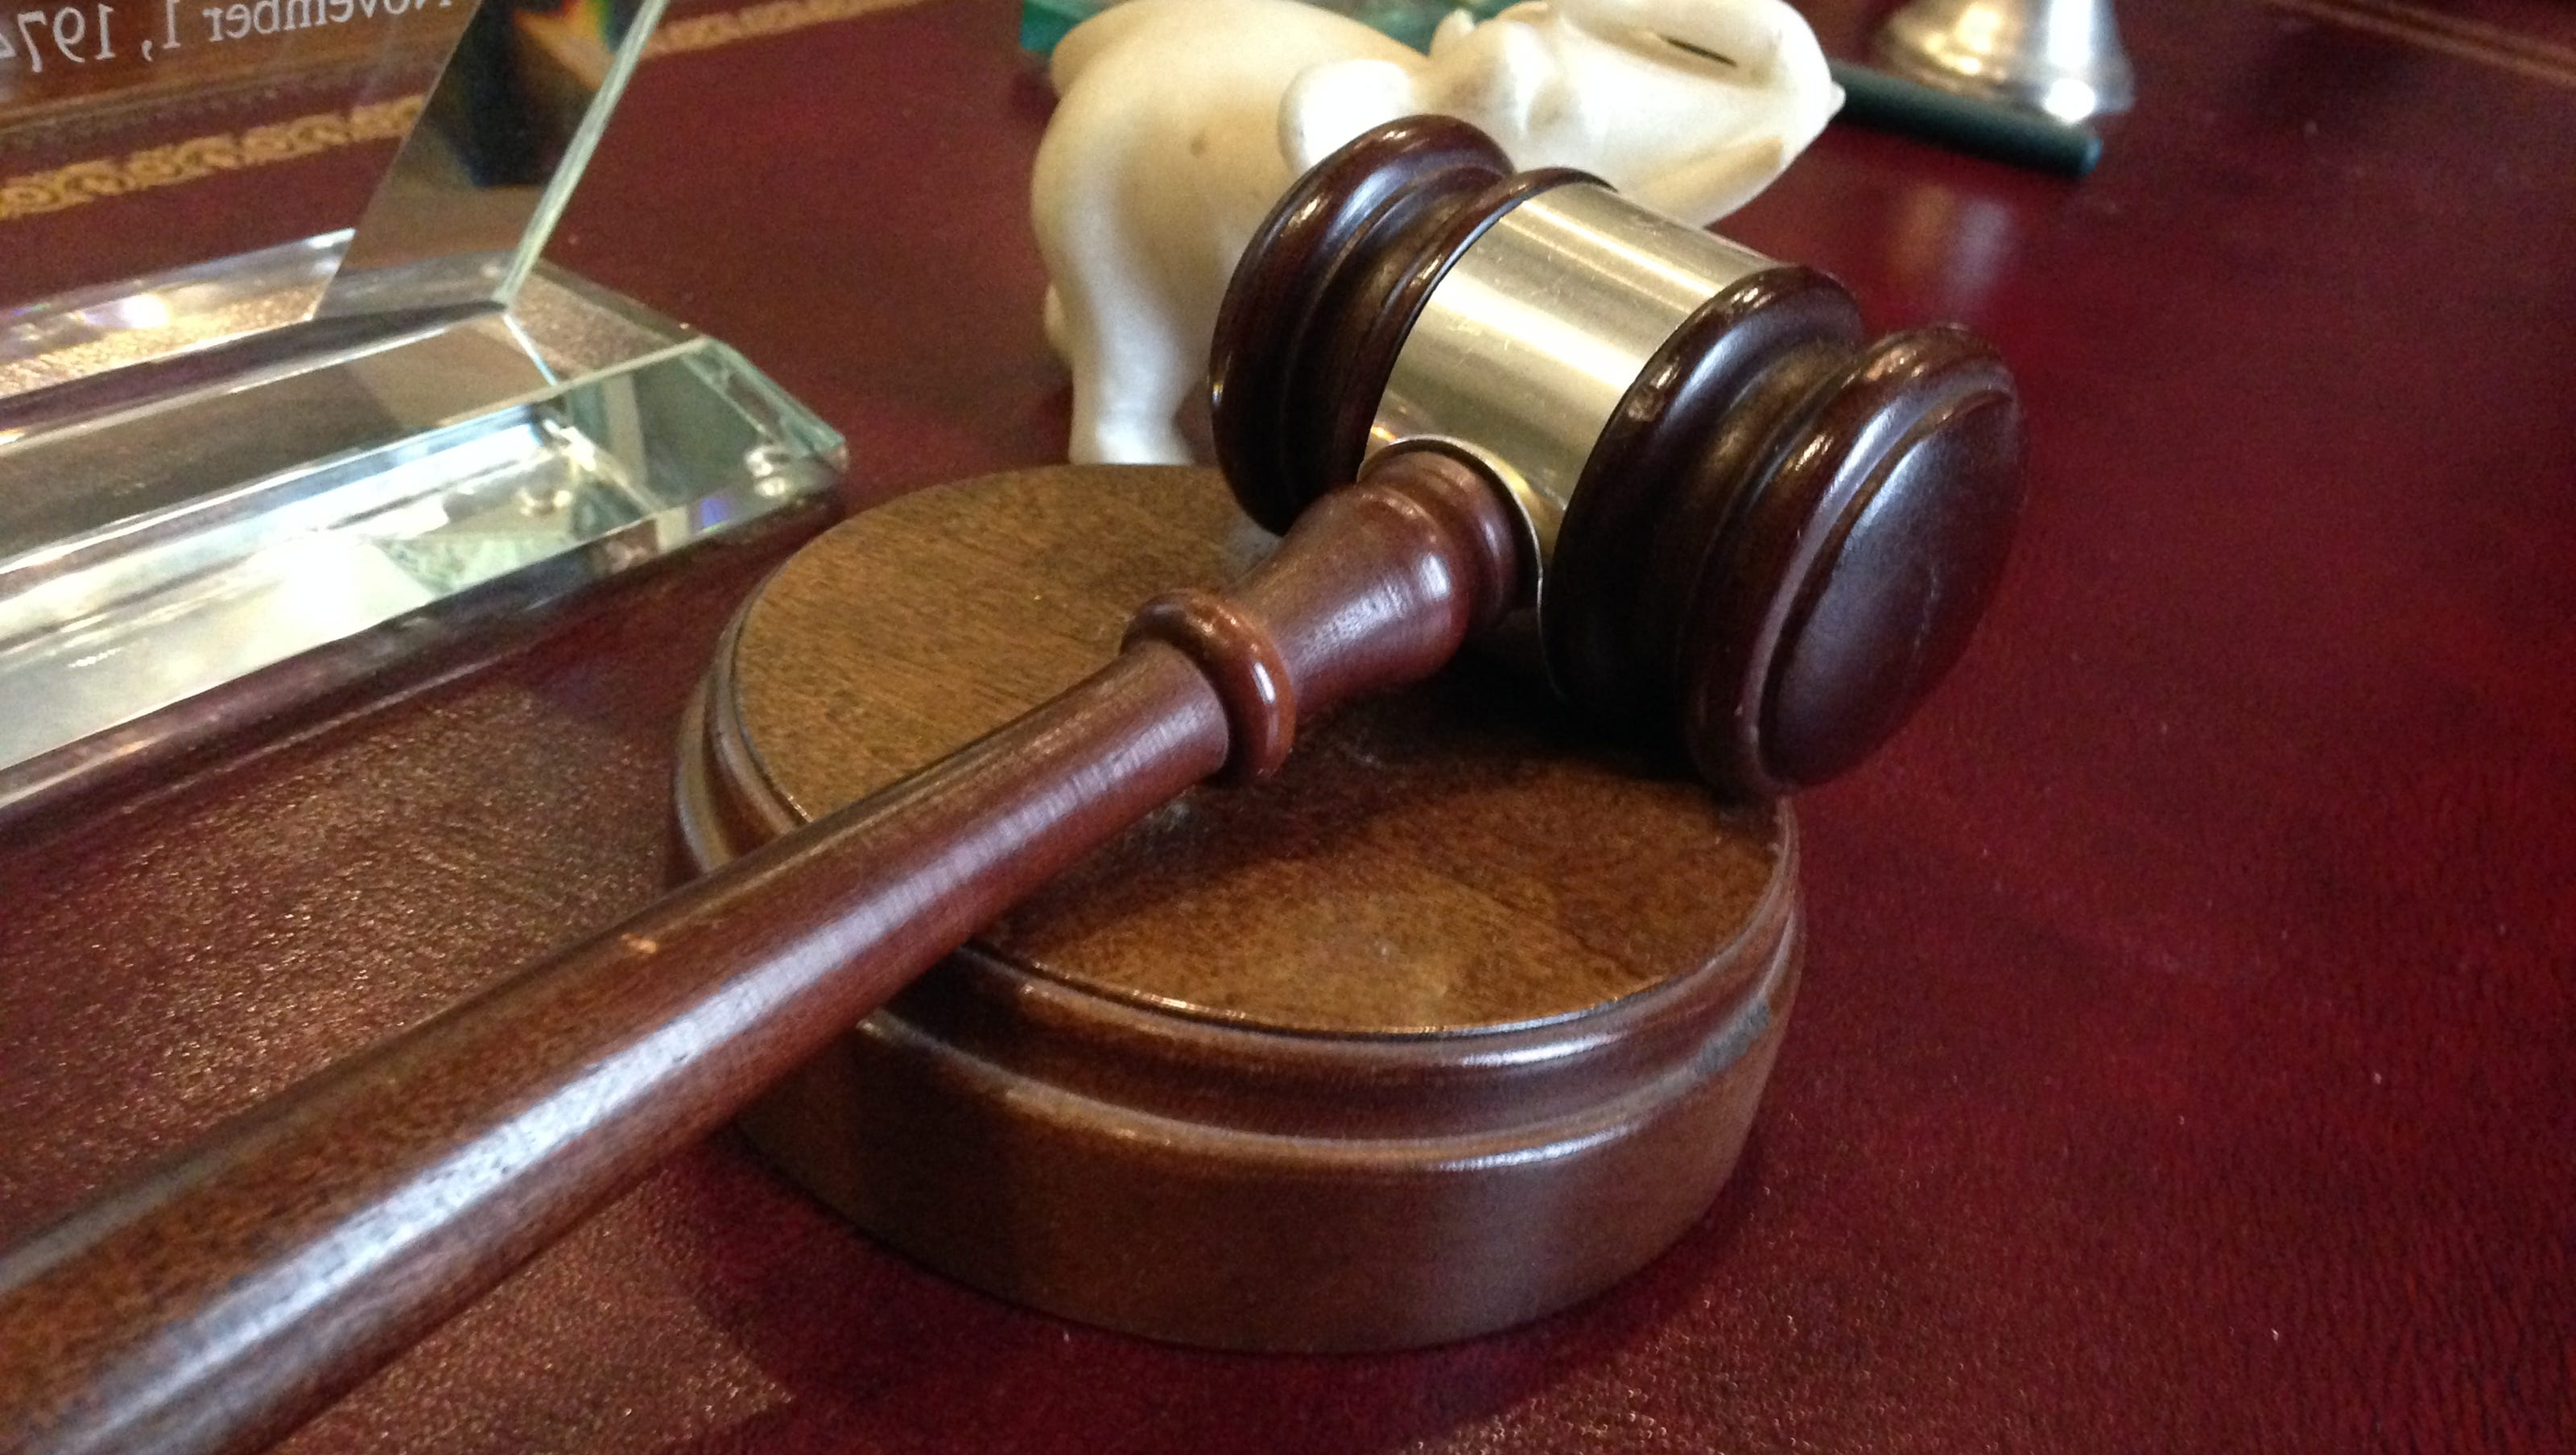 Telemarketers lied to Iowans about having disabilities while selling products, AG says